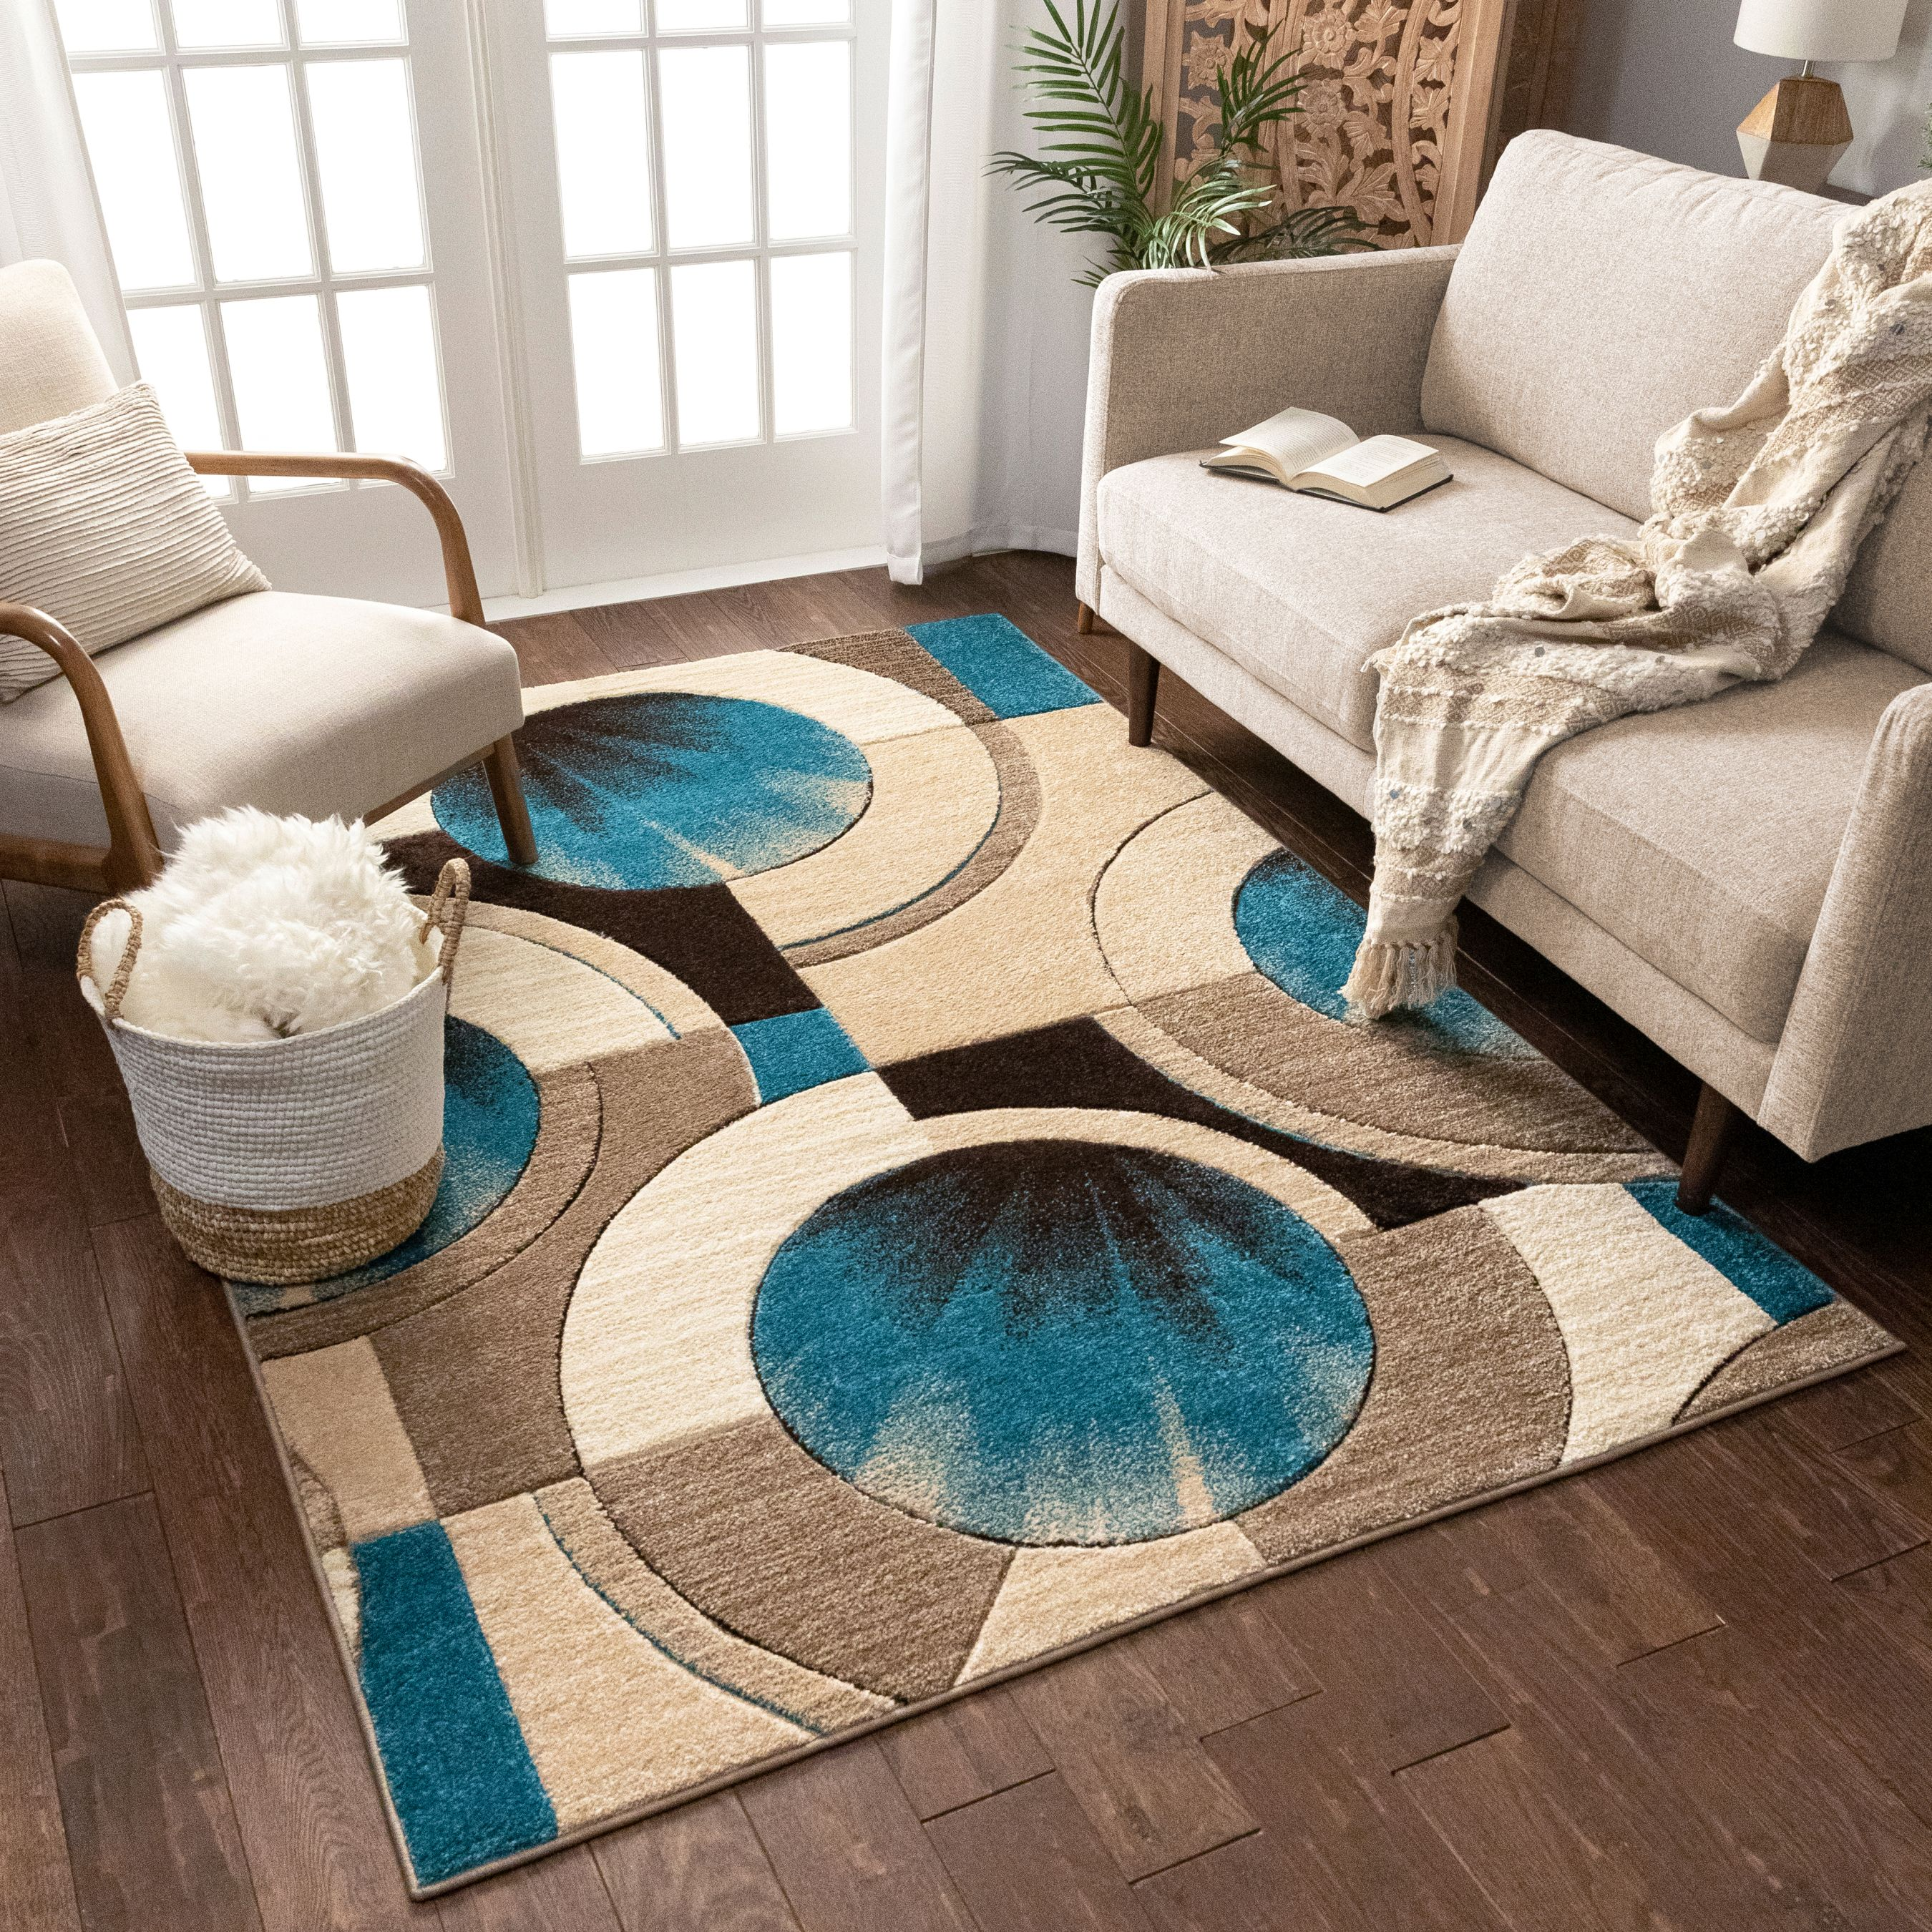 Well Woven Sunburst Blue Beige Brown Modern 5x7 5 3 X 7 3 Geometric Comfy Casual Hand Carved Area Rug Easy To Clean Stain Fade Resistant Abstract Contemporary Thick Soft Plush Walmart Com